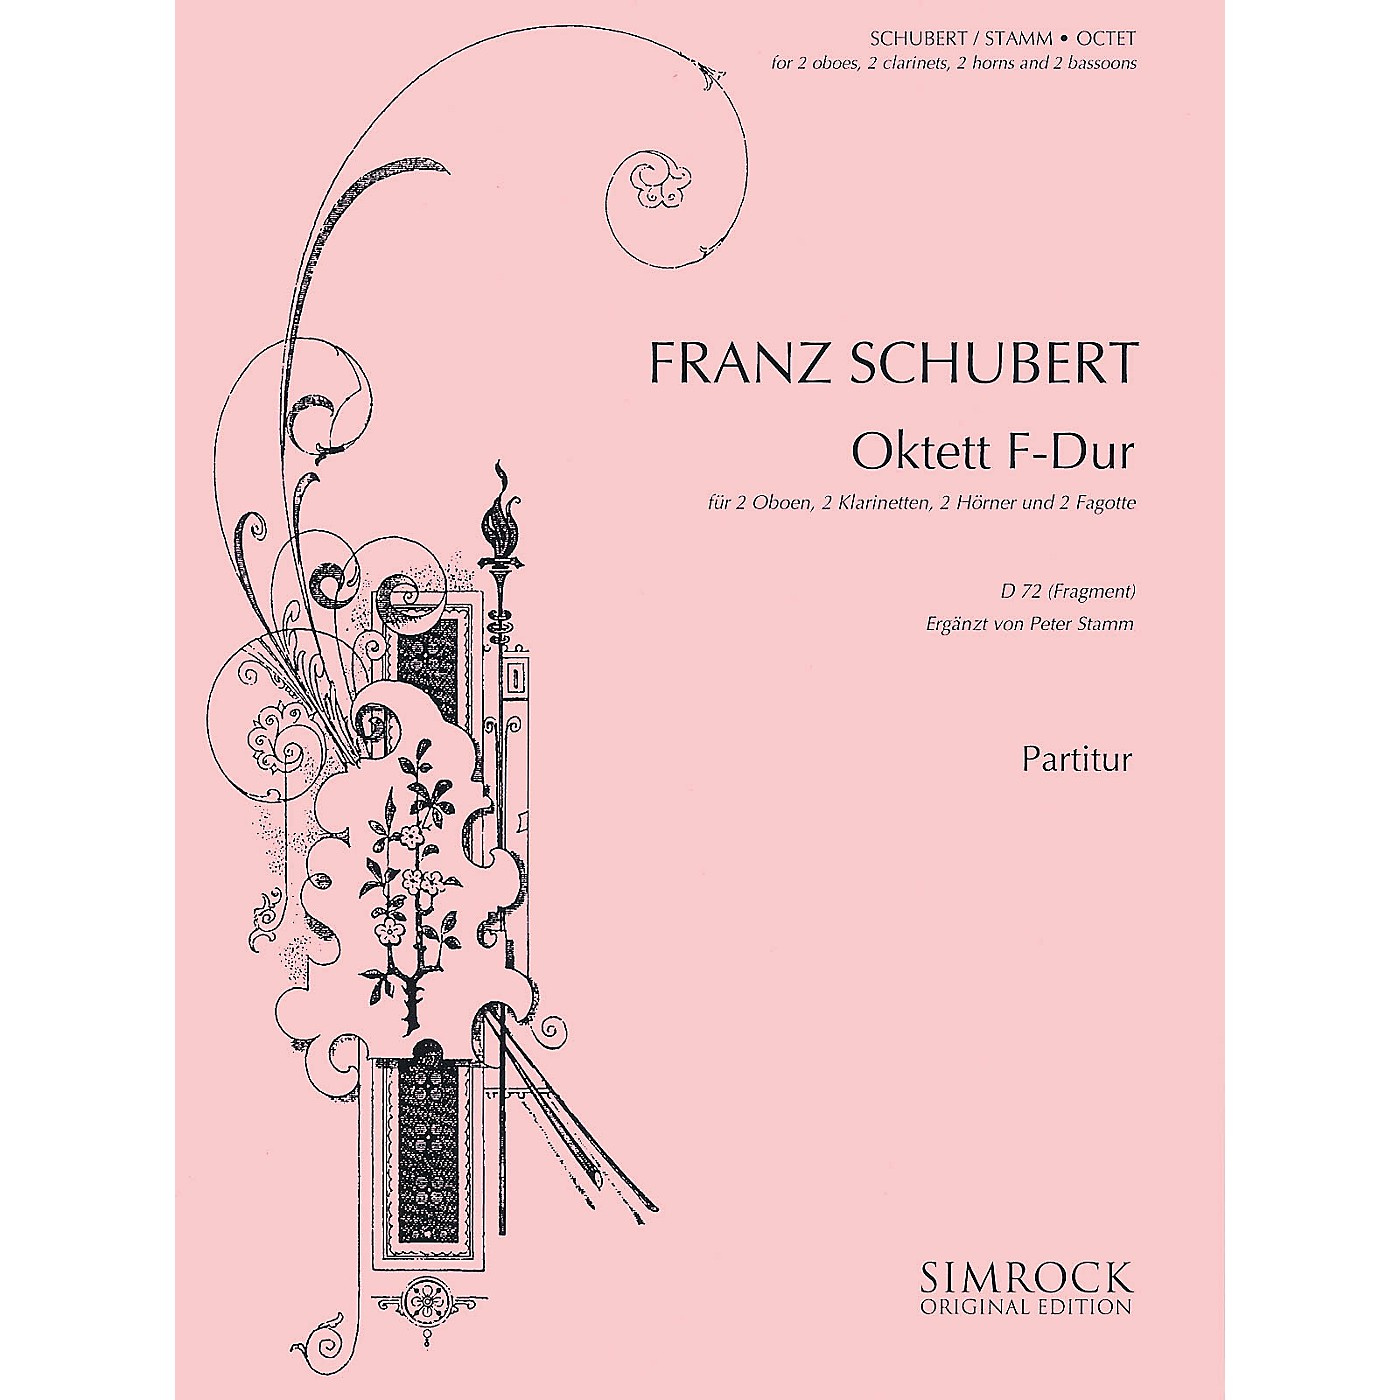 Simrock Octet in F Major, D72 (Fragment) (Score and Parts) Boosey & Hawkes Chamber Music Series by Franz Schubert thumbnail